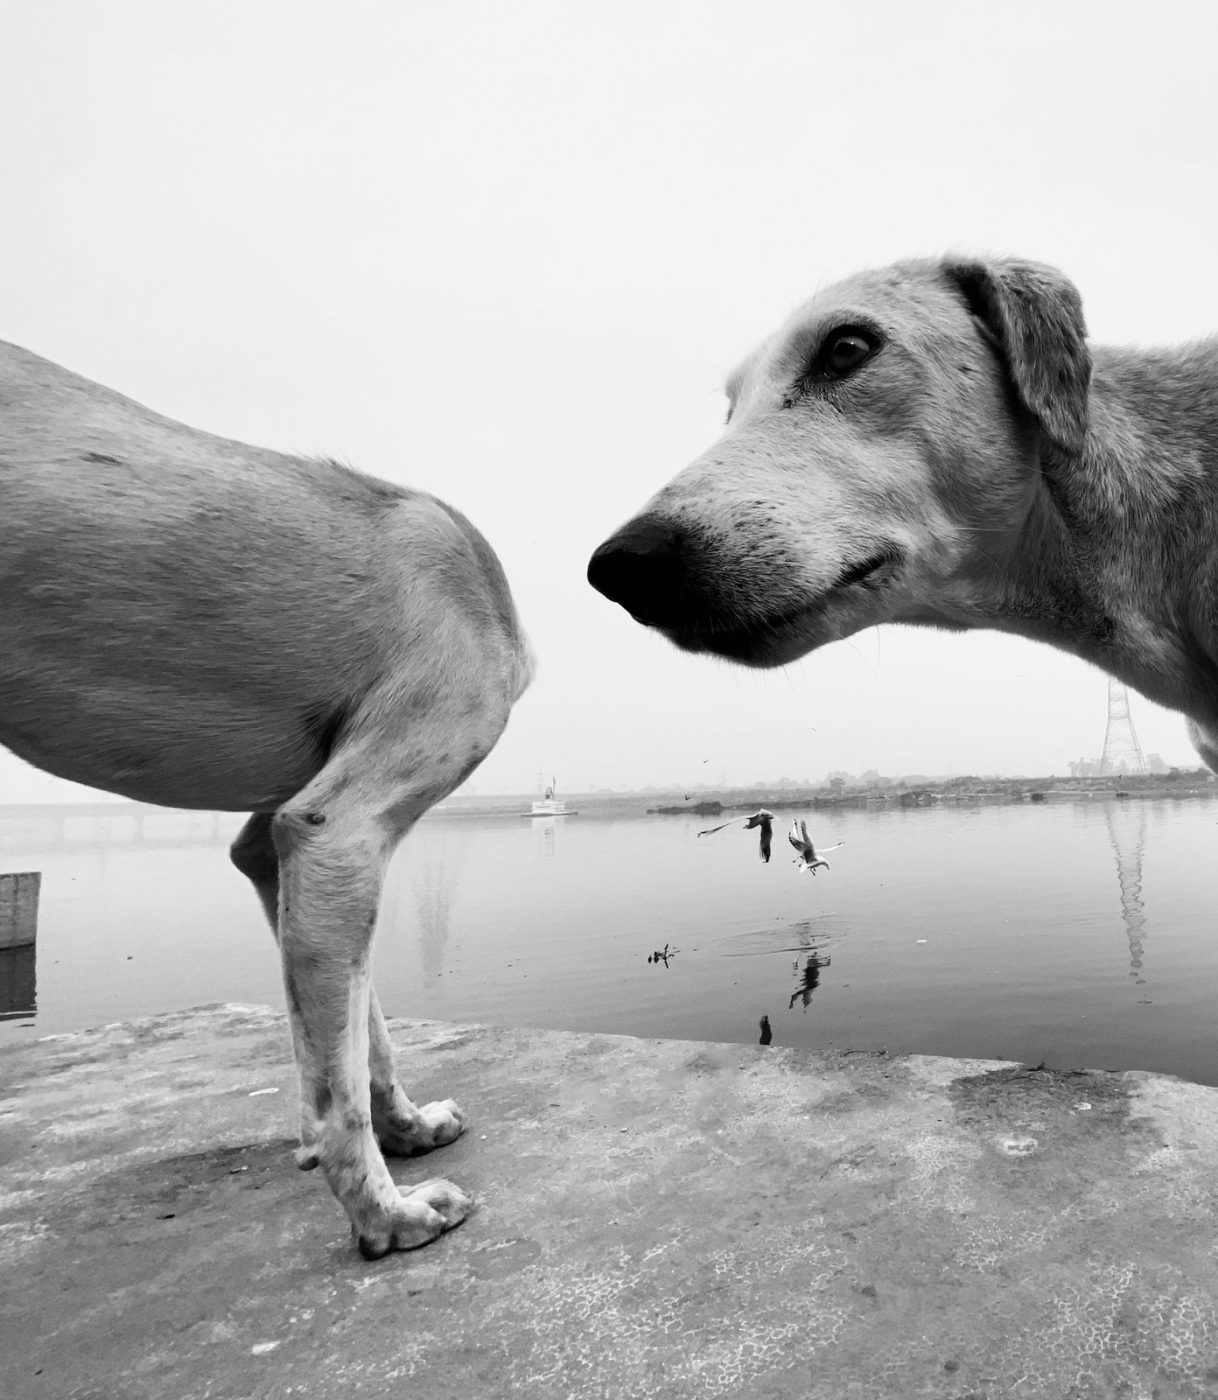 STREETS: URBAN ANIMAL by DIMPY BHALOTIA (INDIA) HONORABLE MENTION